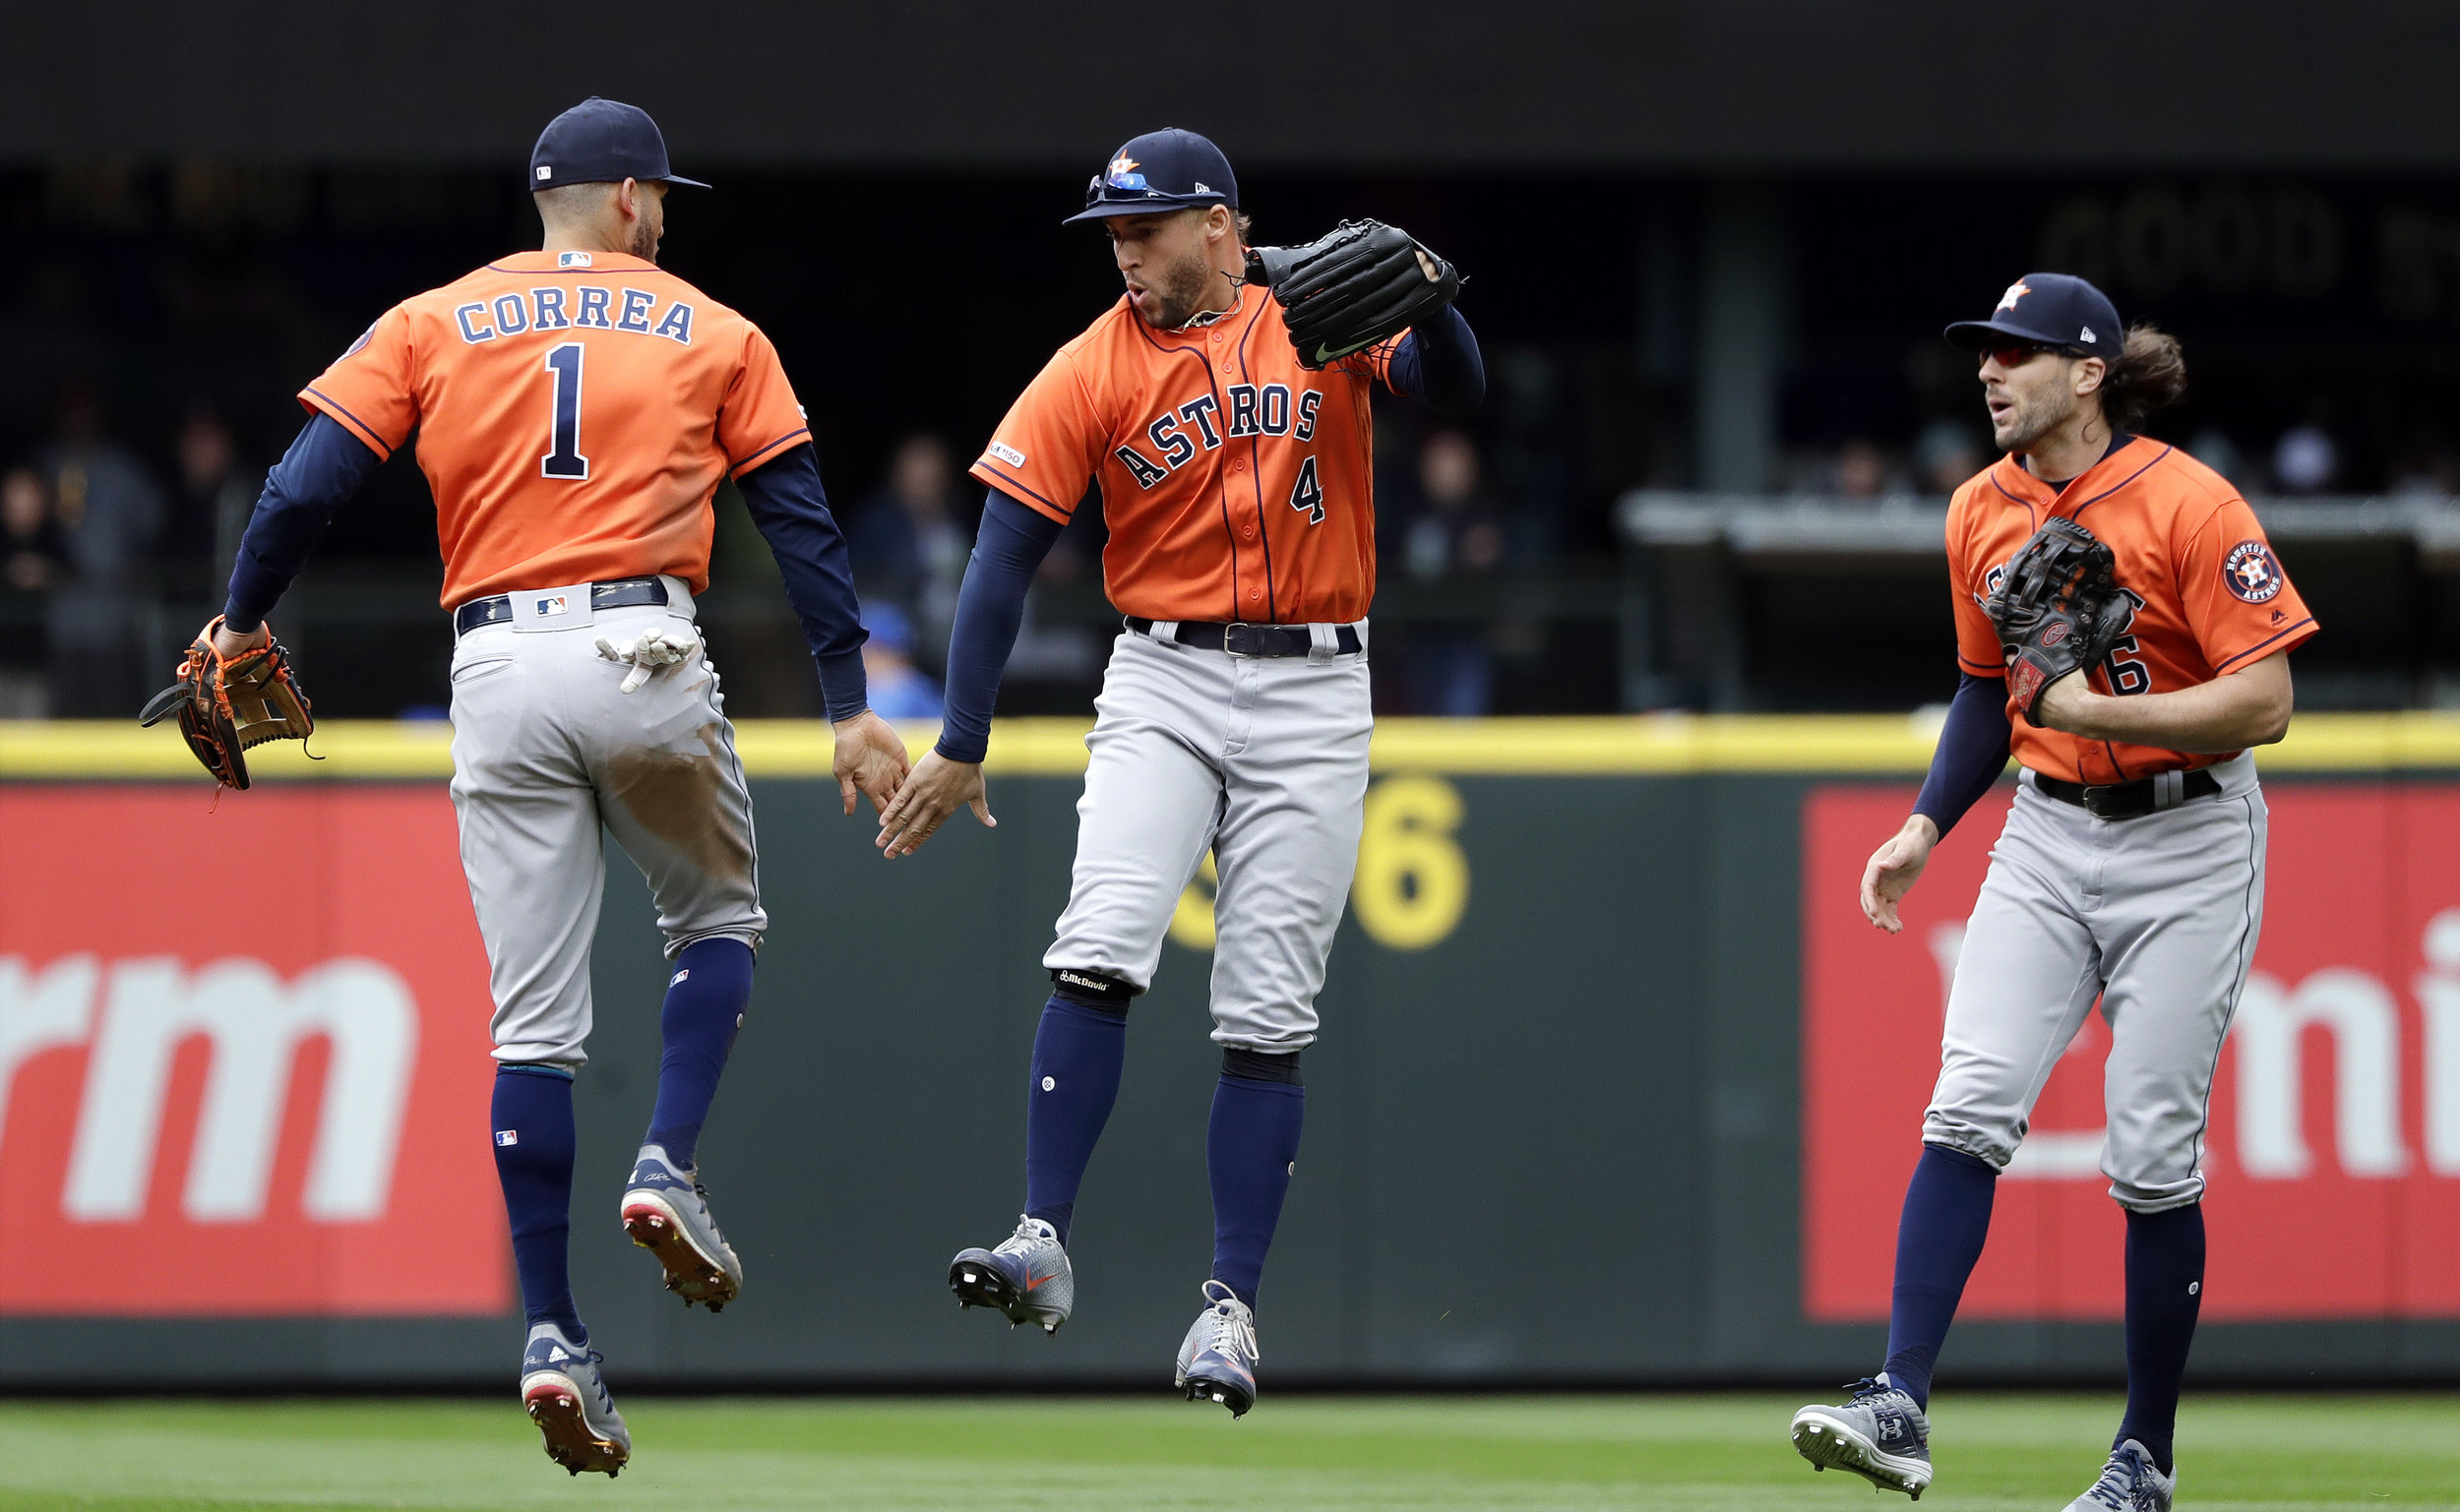 Houston Astros' Carlos Correa (1), George Springer (4), and Jake Marisnick celebrate after the team beat the Seattle Mariners in a baseball game Sunday, April 14, 2019, in Seattle. The Astros won 3-2. (AP Photo/Elaine Thompson)